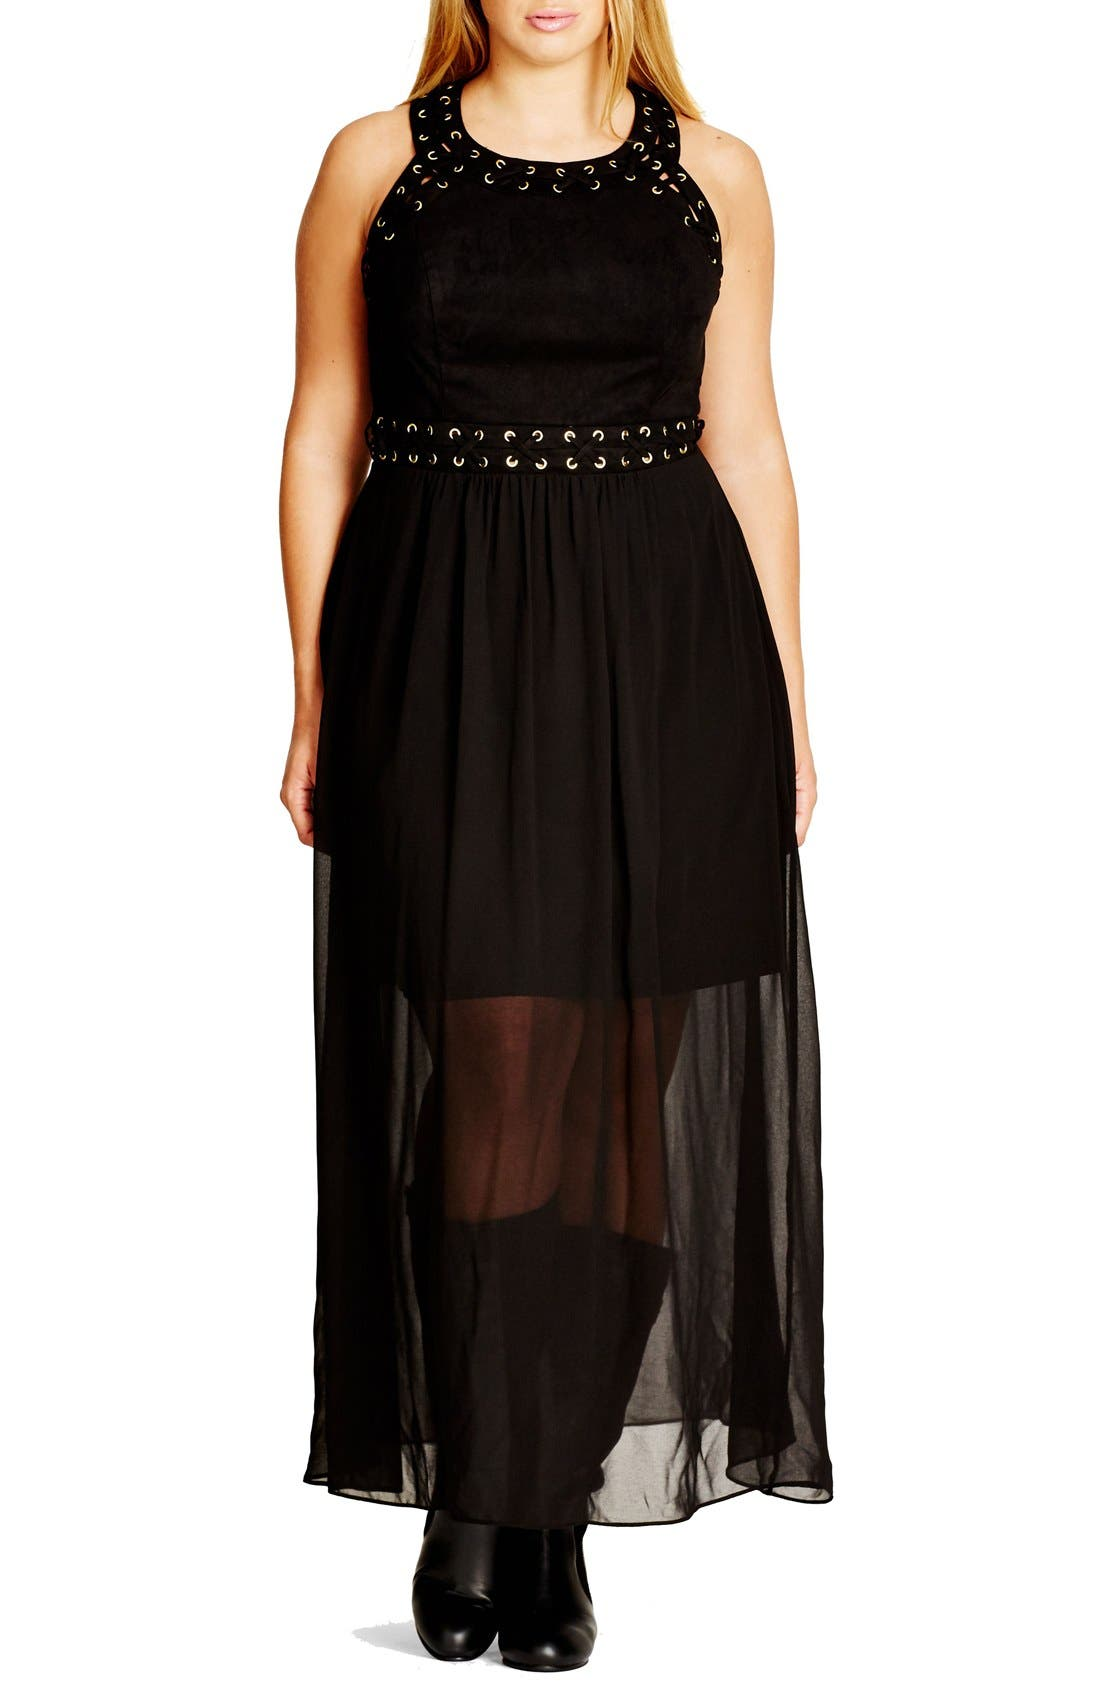 Alternate Image 1 Selected - City Chic 'Rhianna' Lace-Up Trim Faux Suede & Chiffon Maxi Dress (Plus Size)